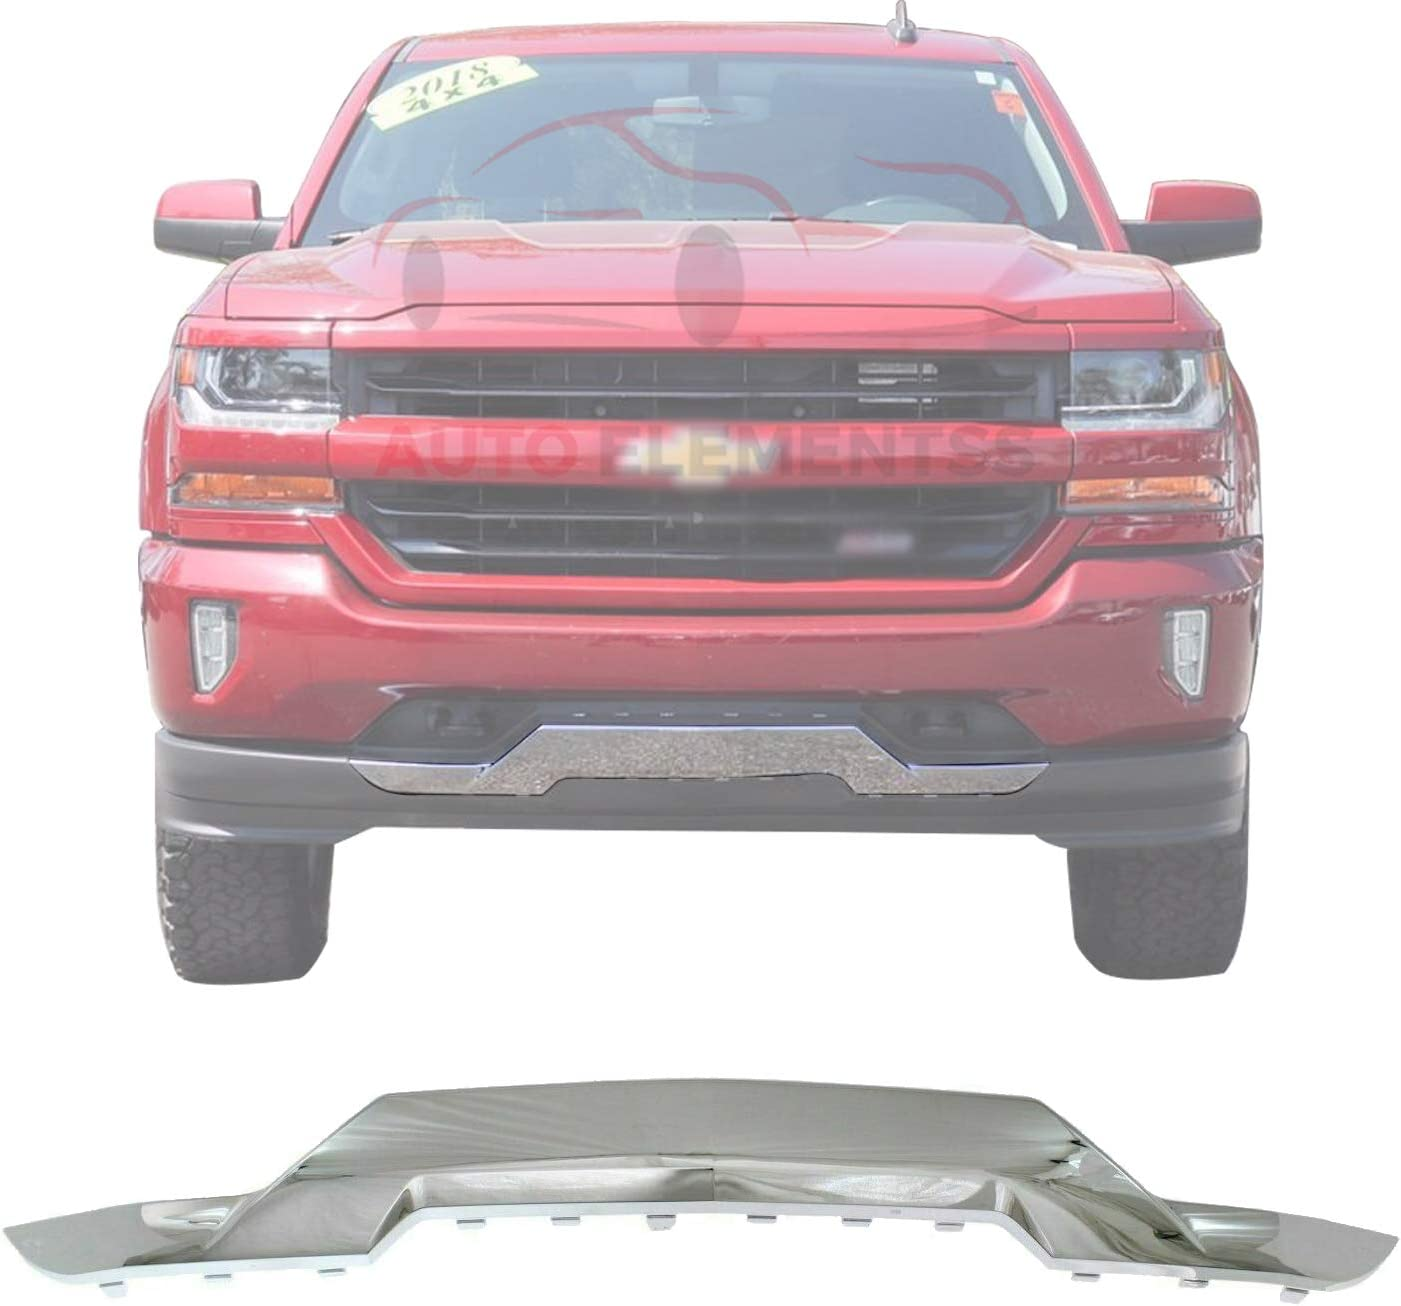 New Front Skid Plate Impact service Bar Chrome Chevrolet 2016-2018 Max 46% OFF S For